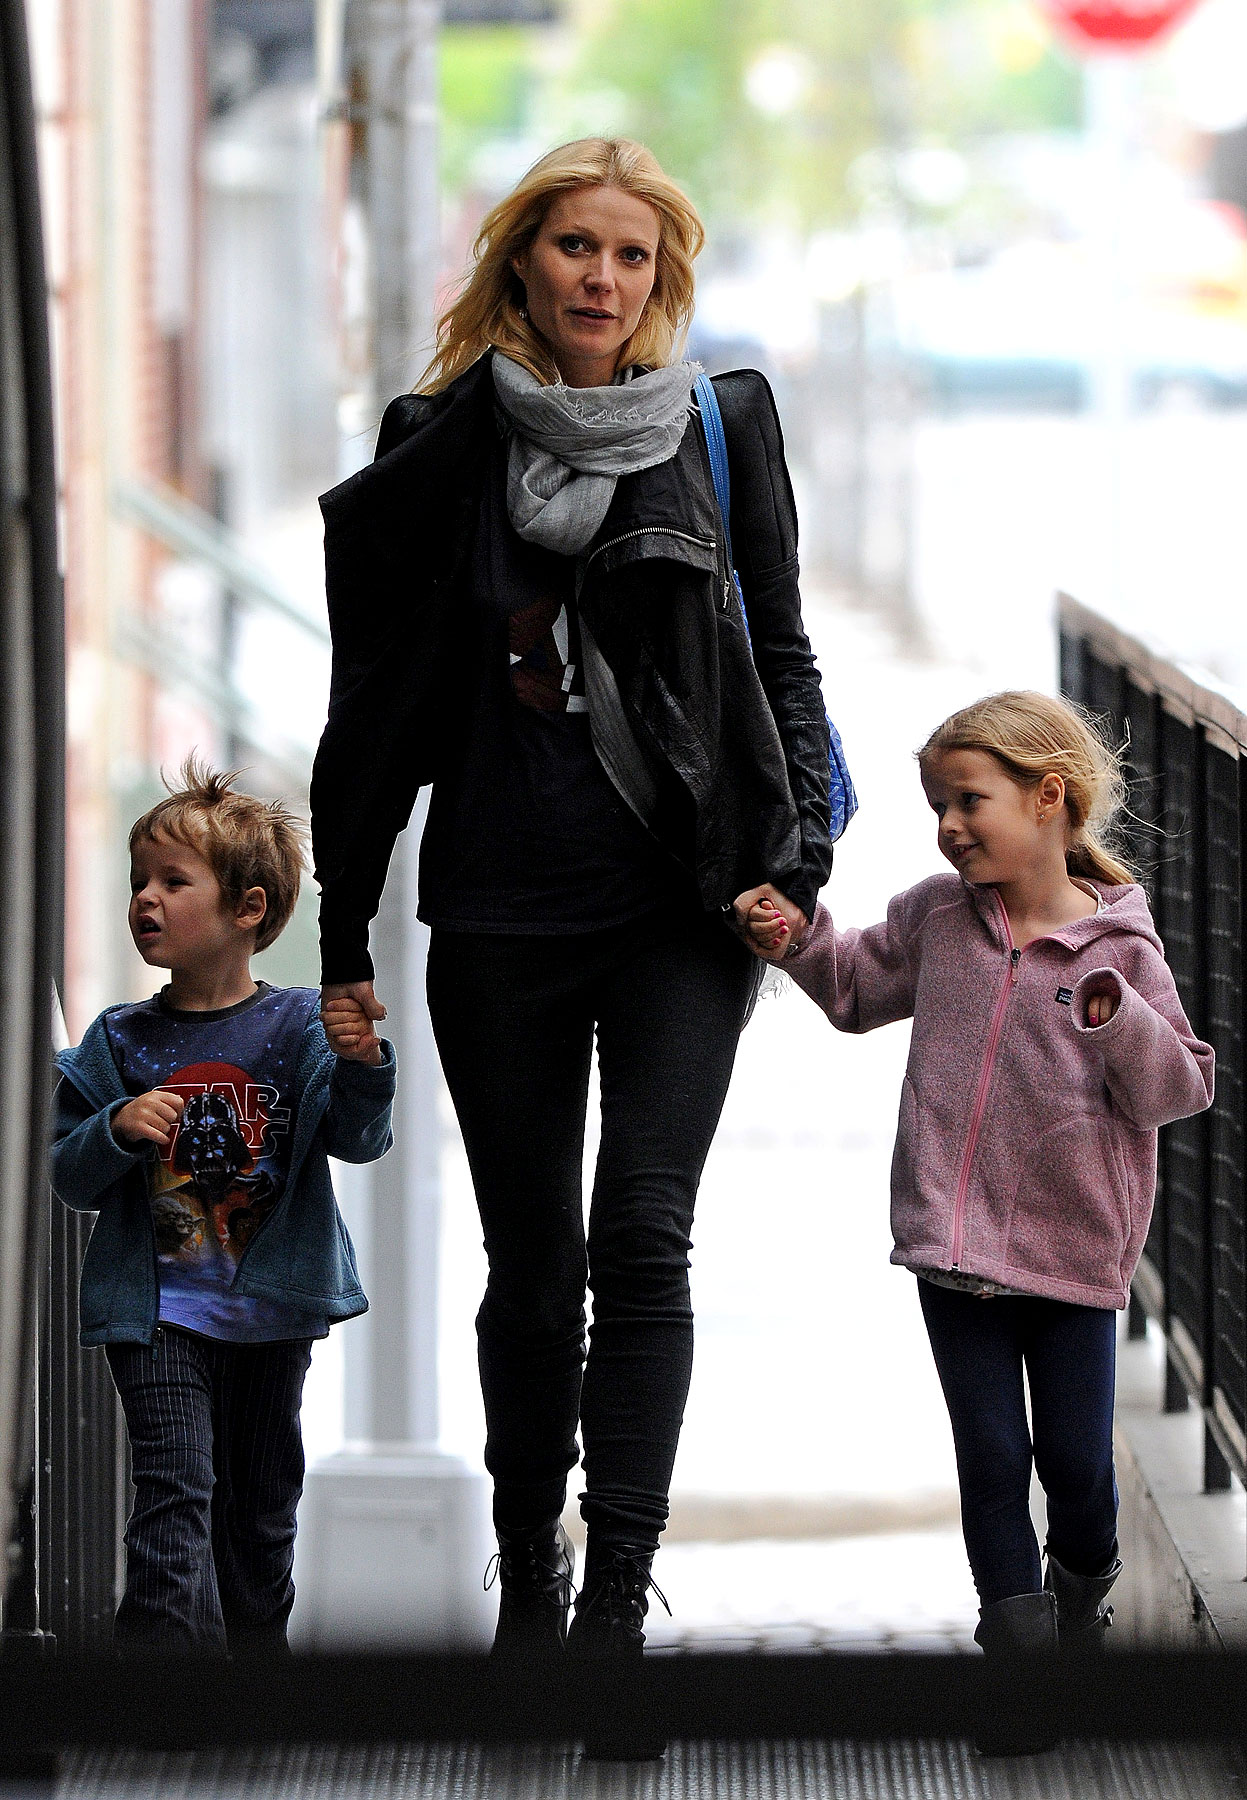 Gwyneth Paltrow Shows Her Leather Mommy Side In NYC (PHOTOS)